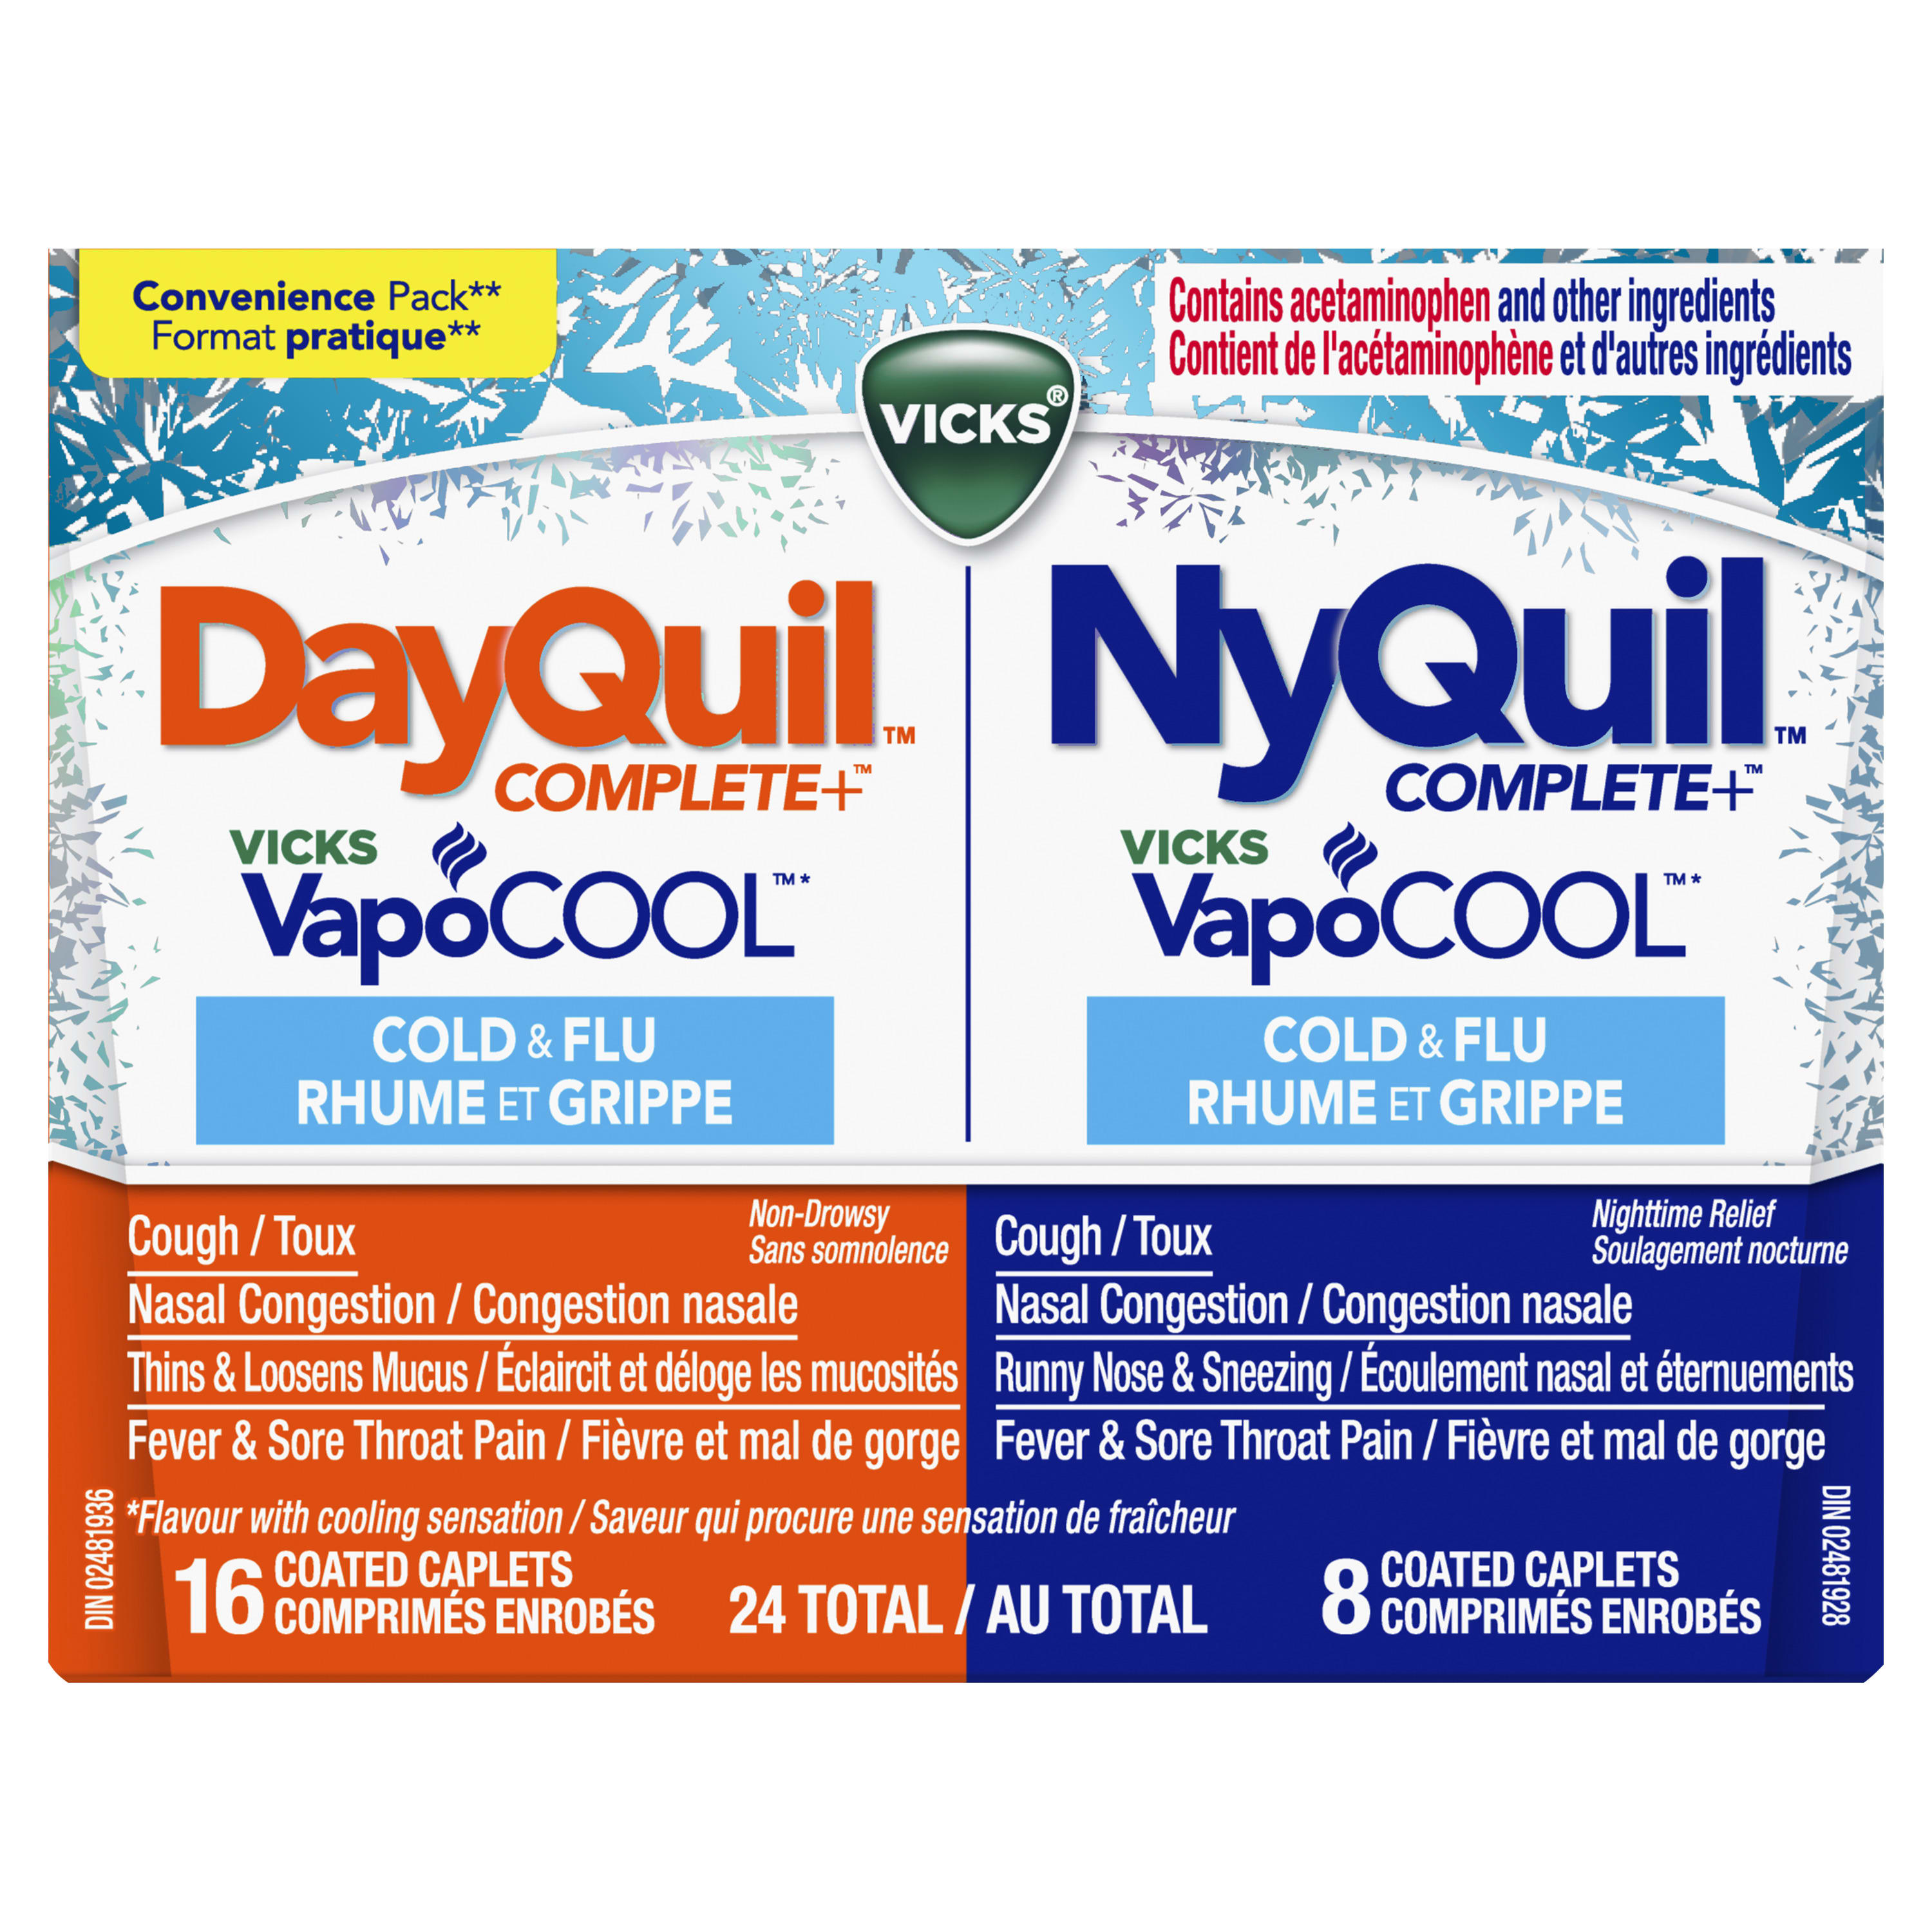 dayquil-nyquil-complete-tm-vicks-vapocool-tm-nighttime-cough-cold-and-flu-front